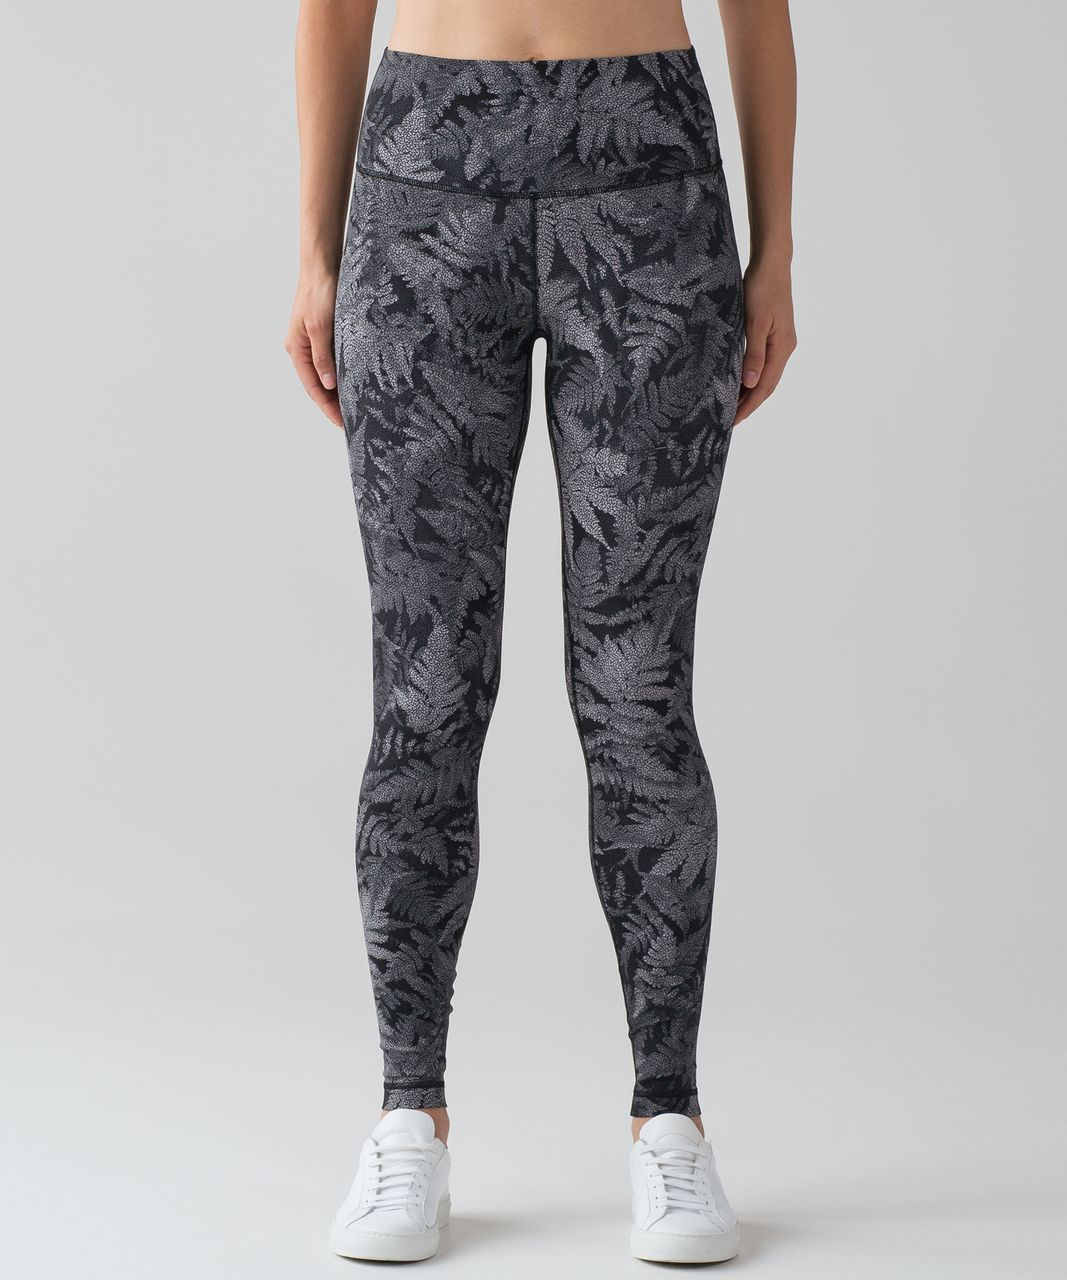 "Lululemon Wunder Under Hi-Rise Tight (Full-On Luxtreme 28"") - Kindred Spirit Black Multi"